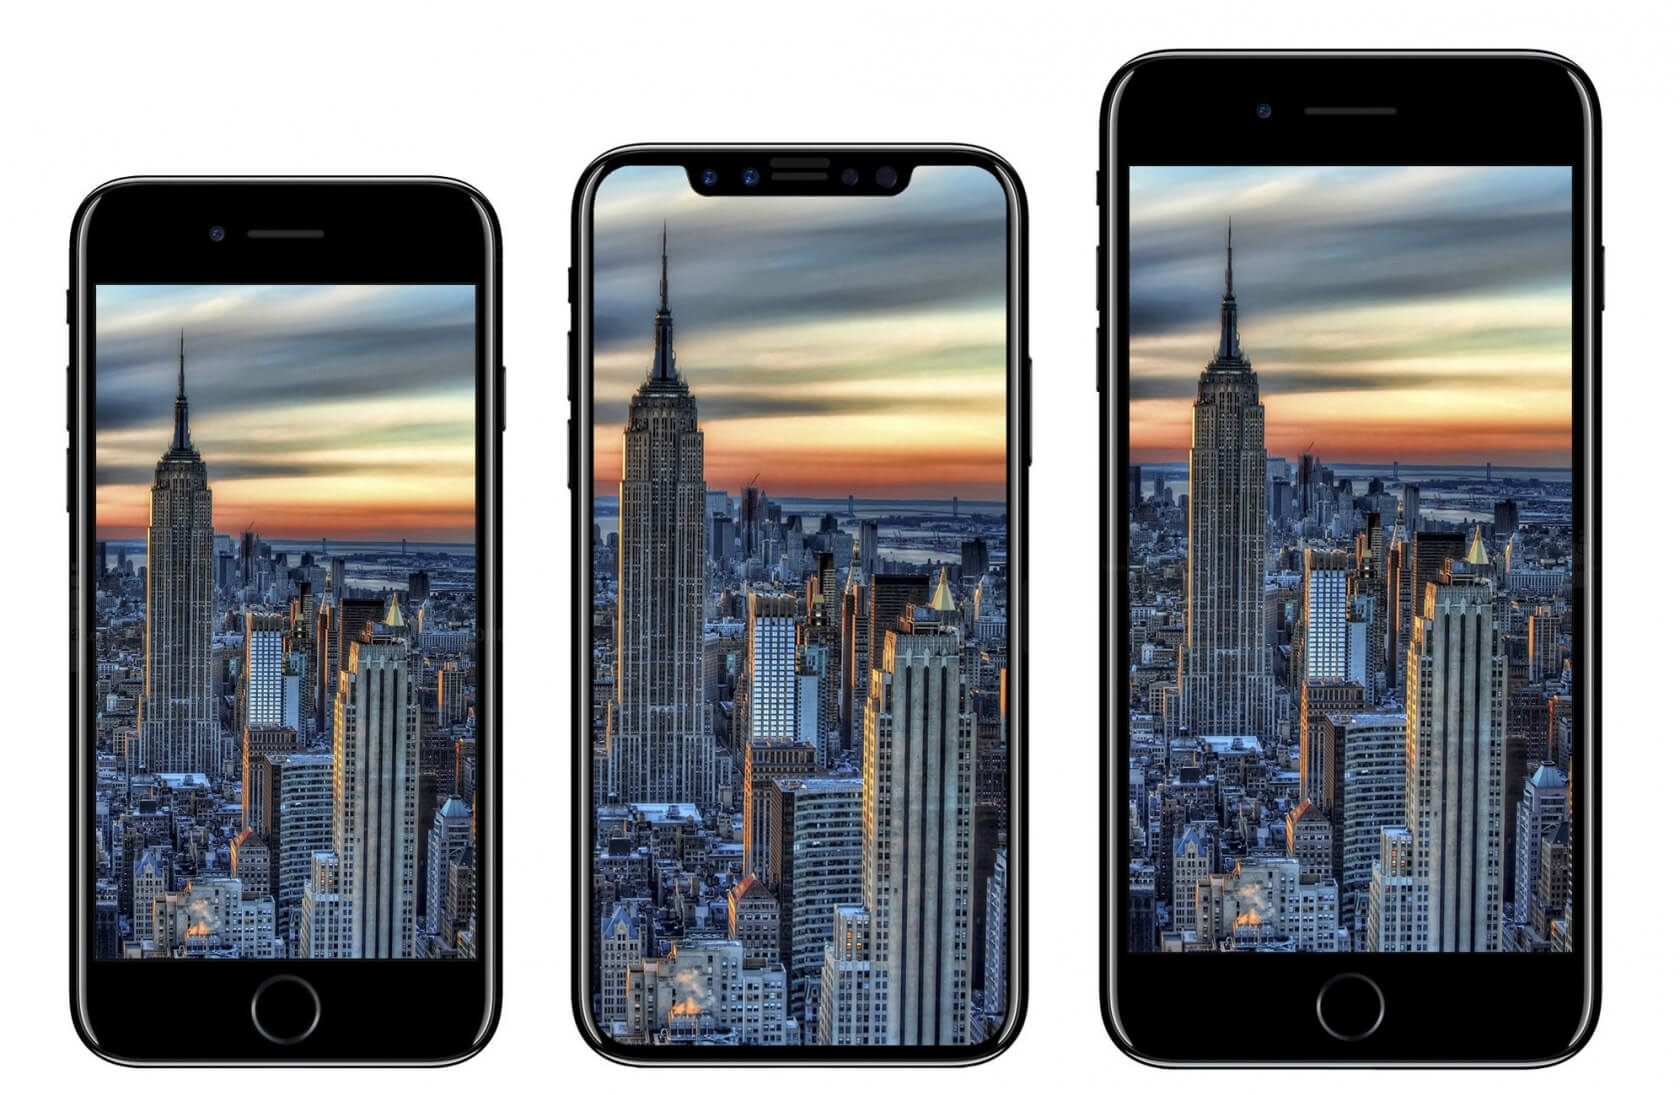 KGI report: Three new iPhones to launch simultaneously next month, iPhone 8 supplies limited